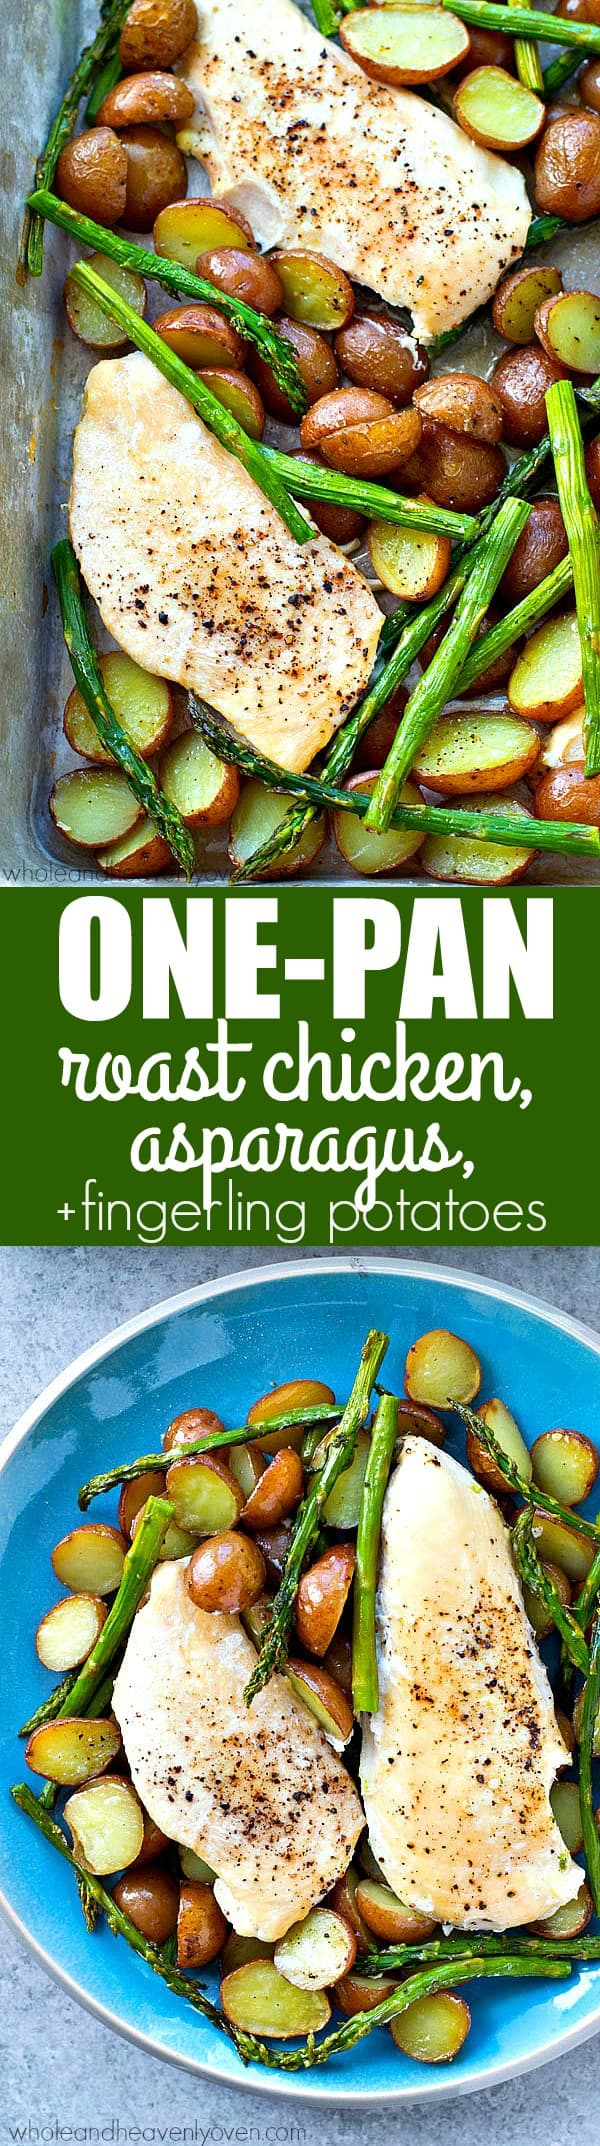 An entire spring dinner made in one pan! Juicy roasted chicken, tender asparagus, and lots of roasty fingerling potatoes for one winner of a dinner.